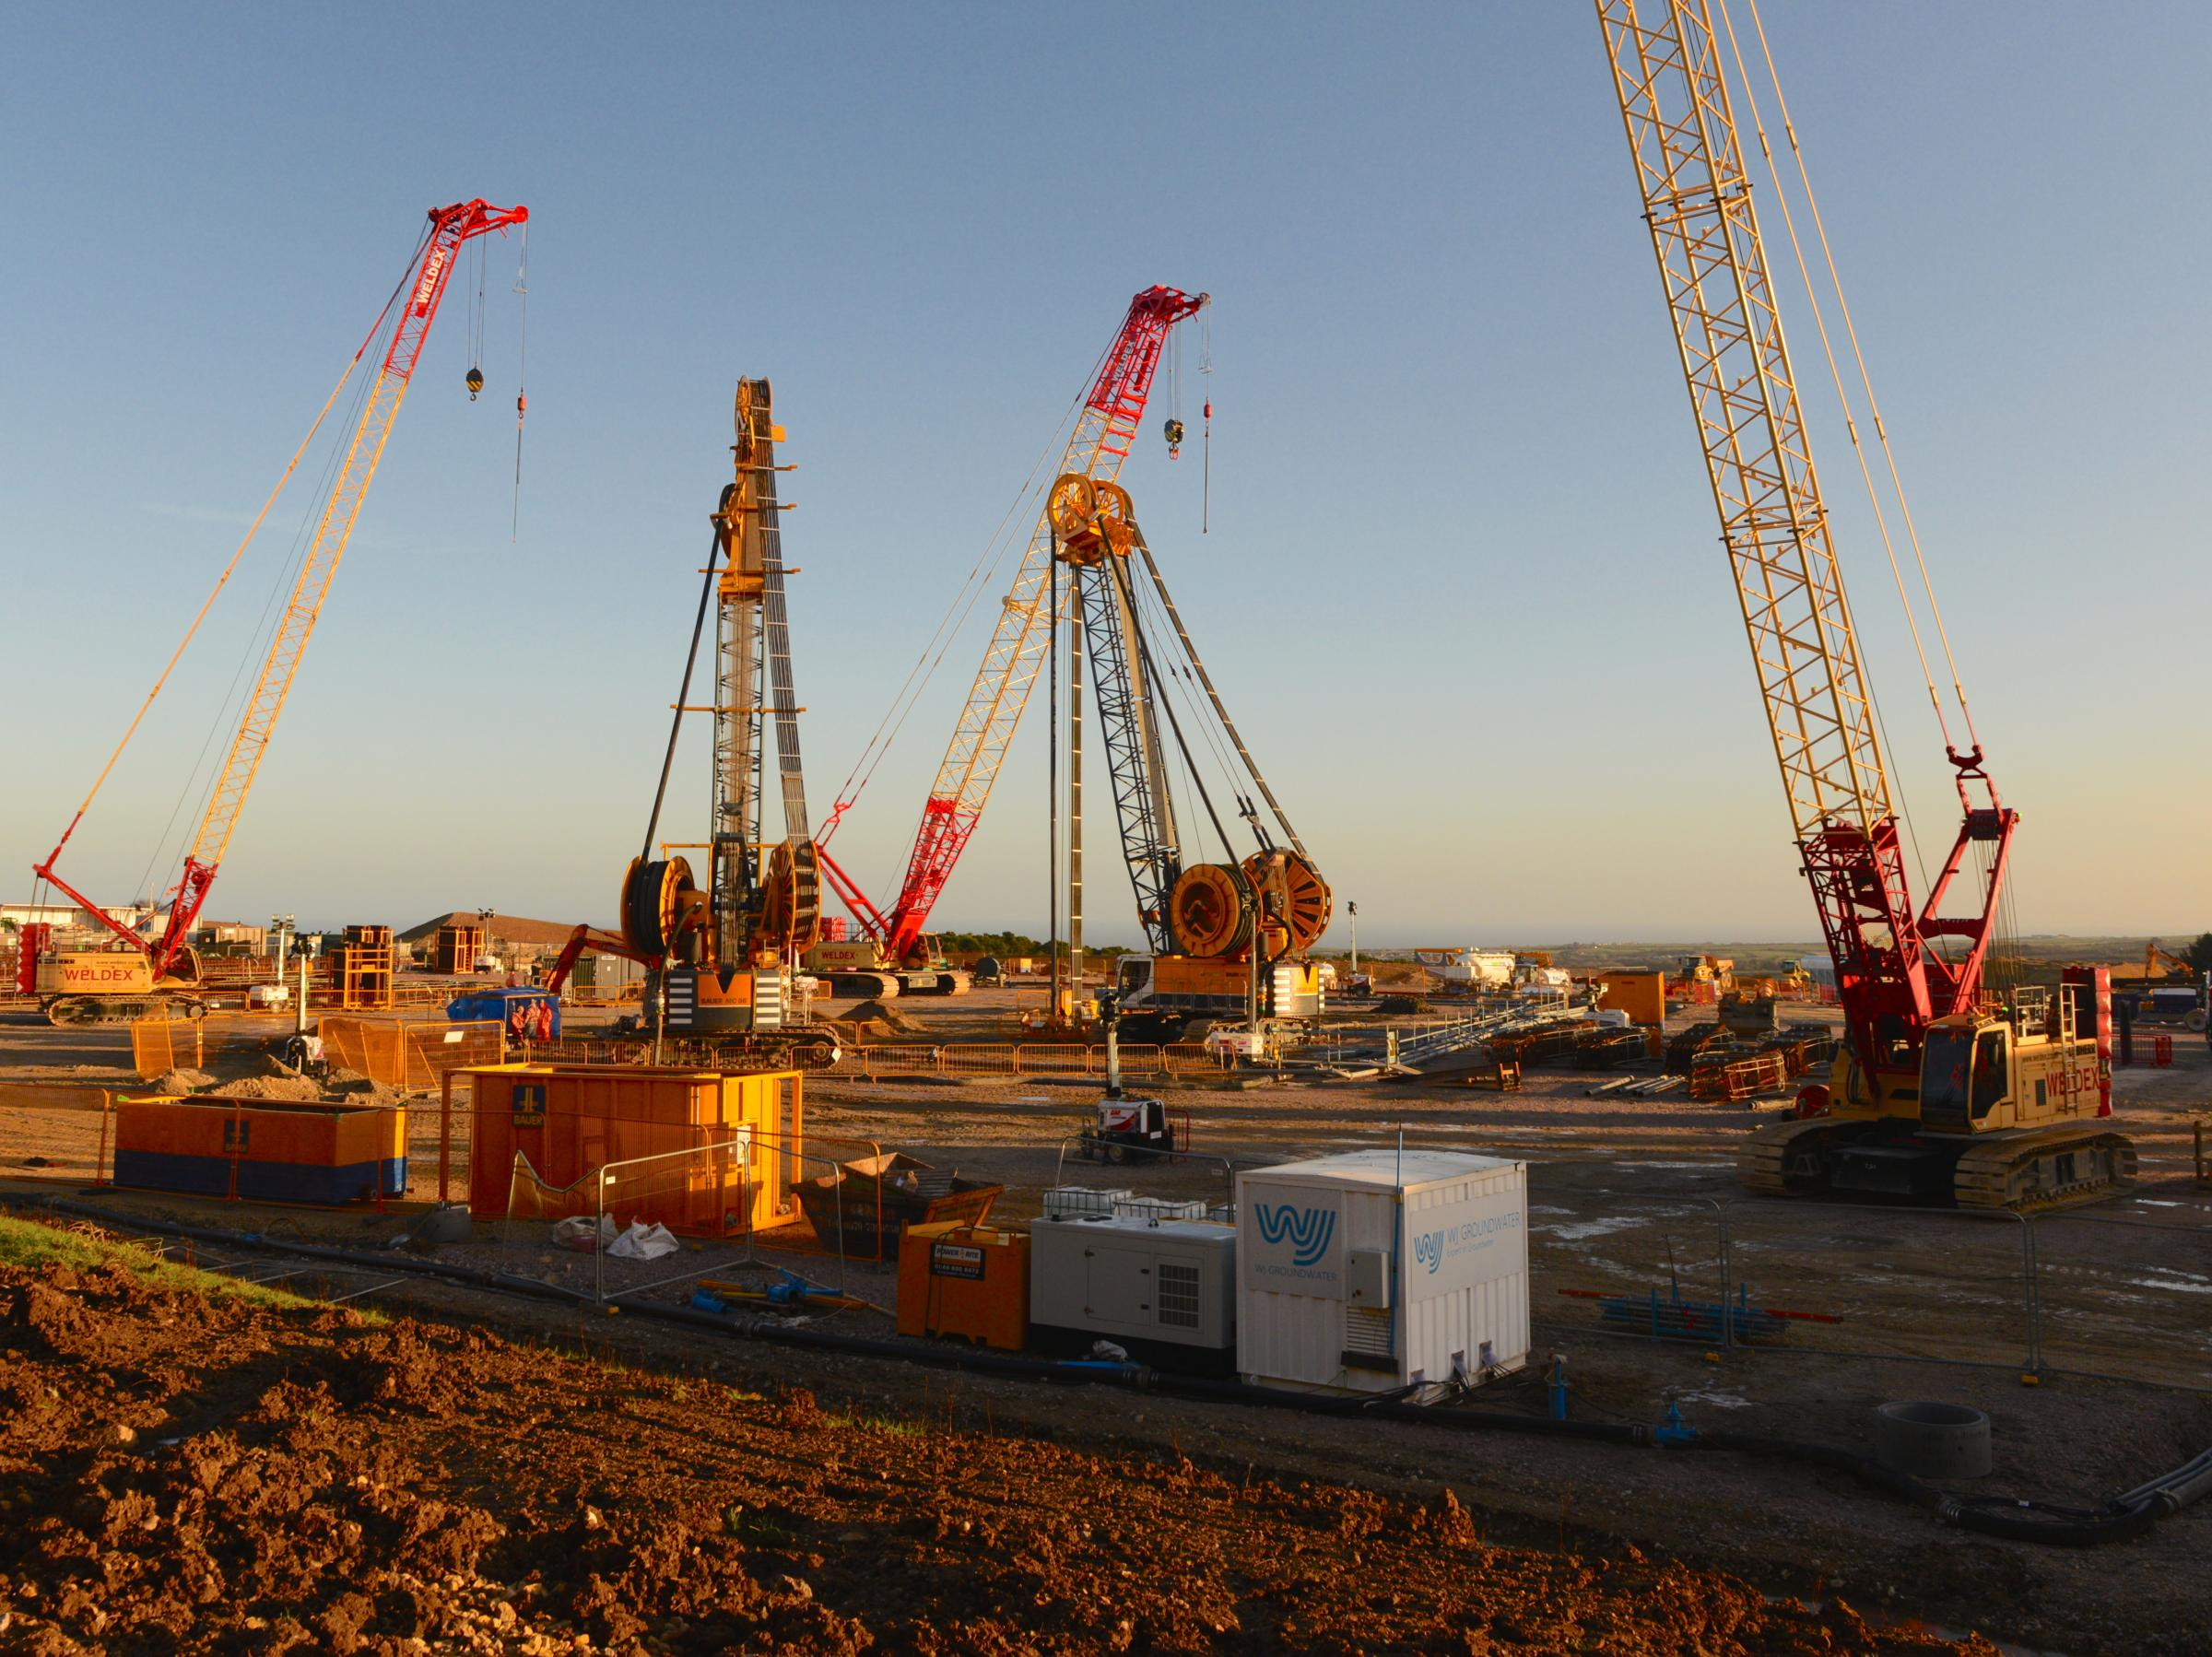 SITE: Work continues on Sirius Minerals' Woodsmith Mine, near Whitby